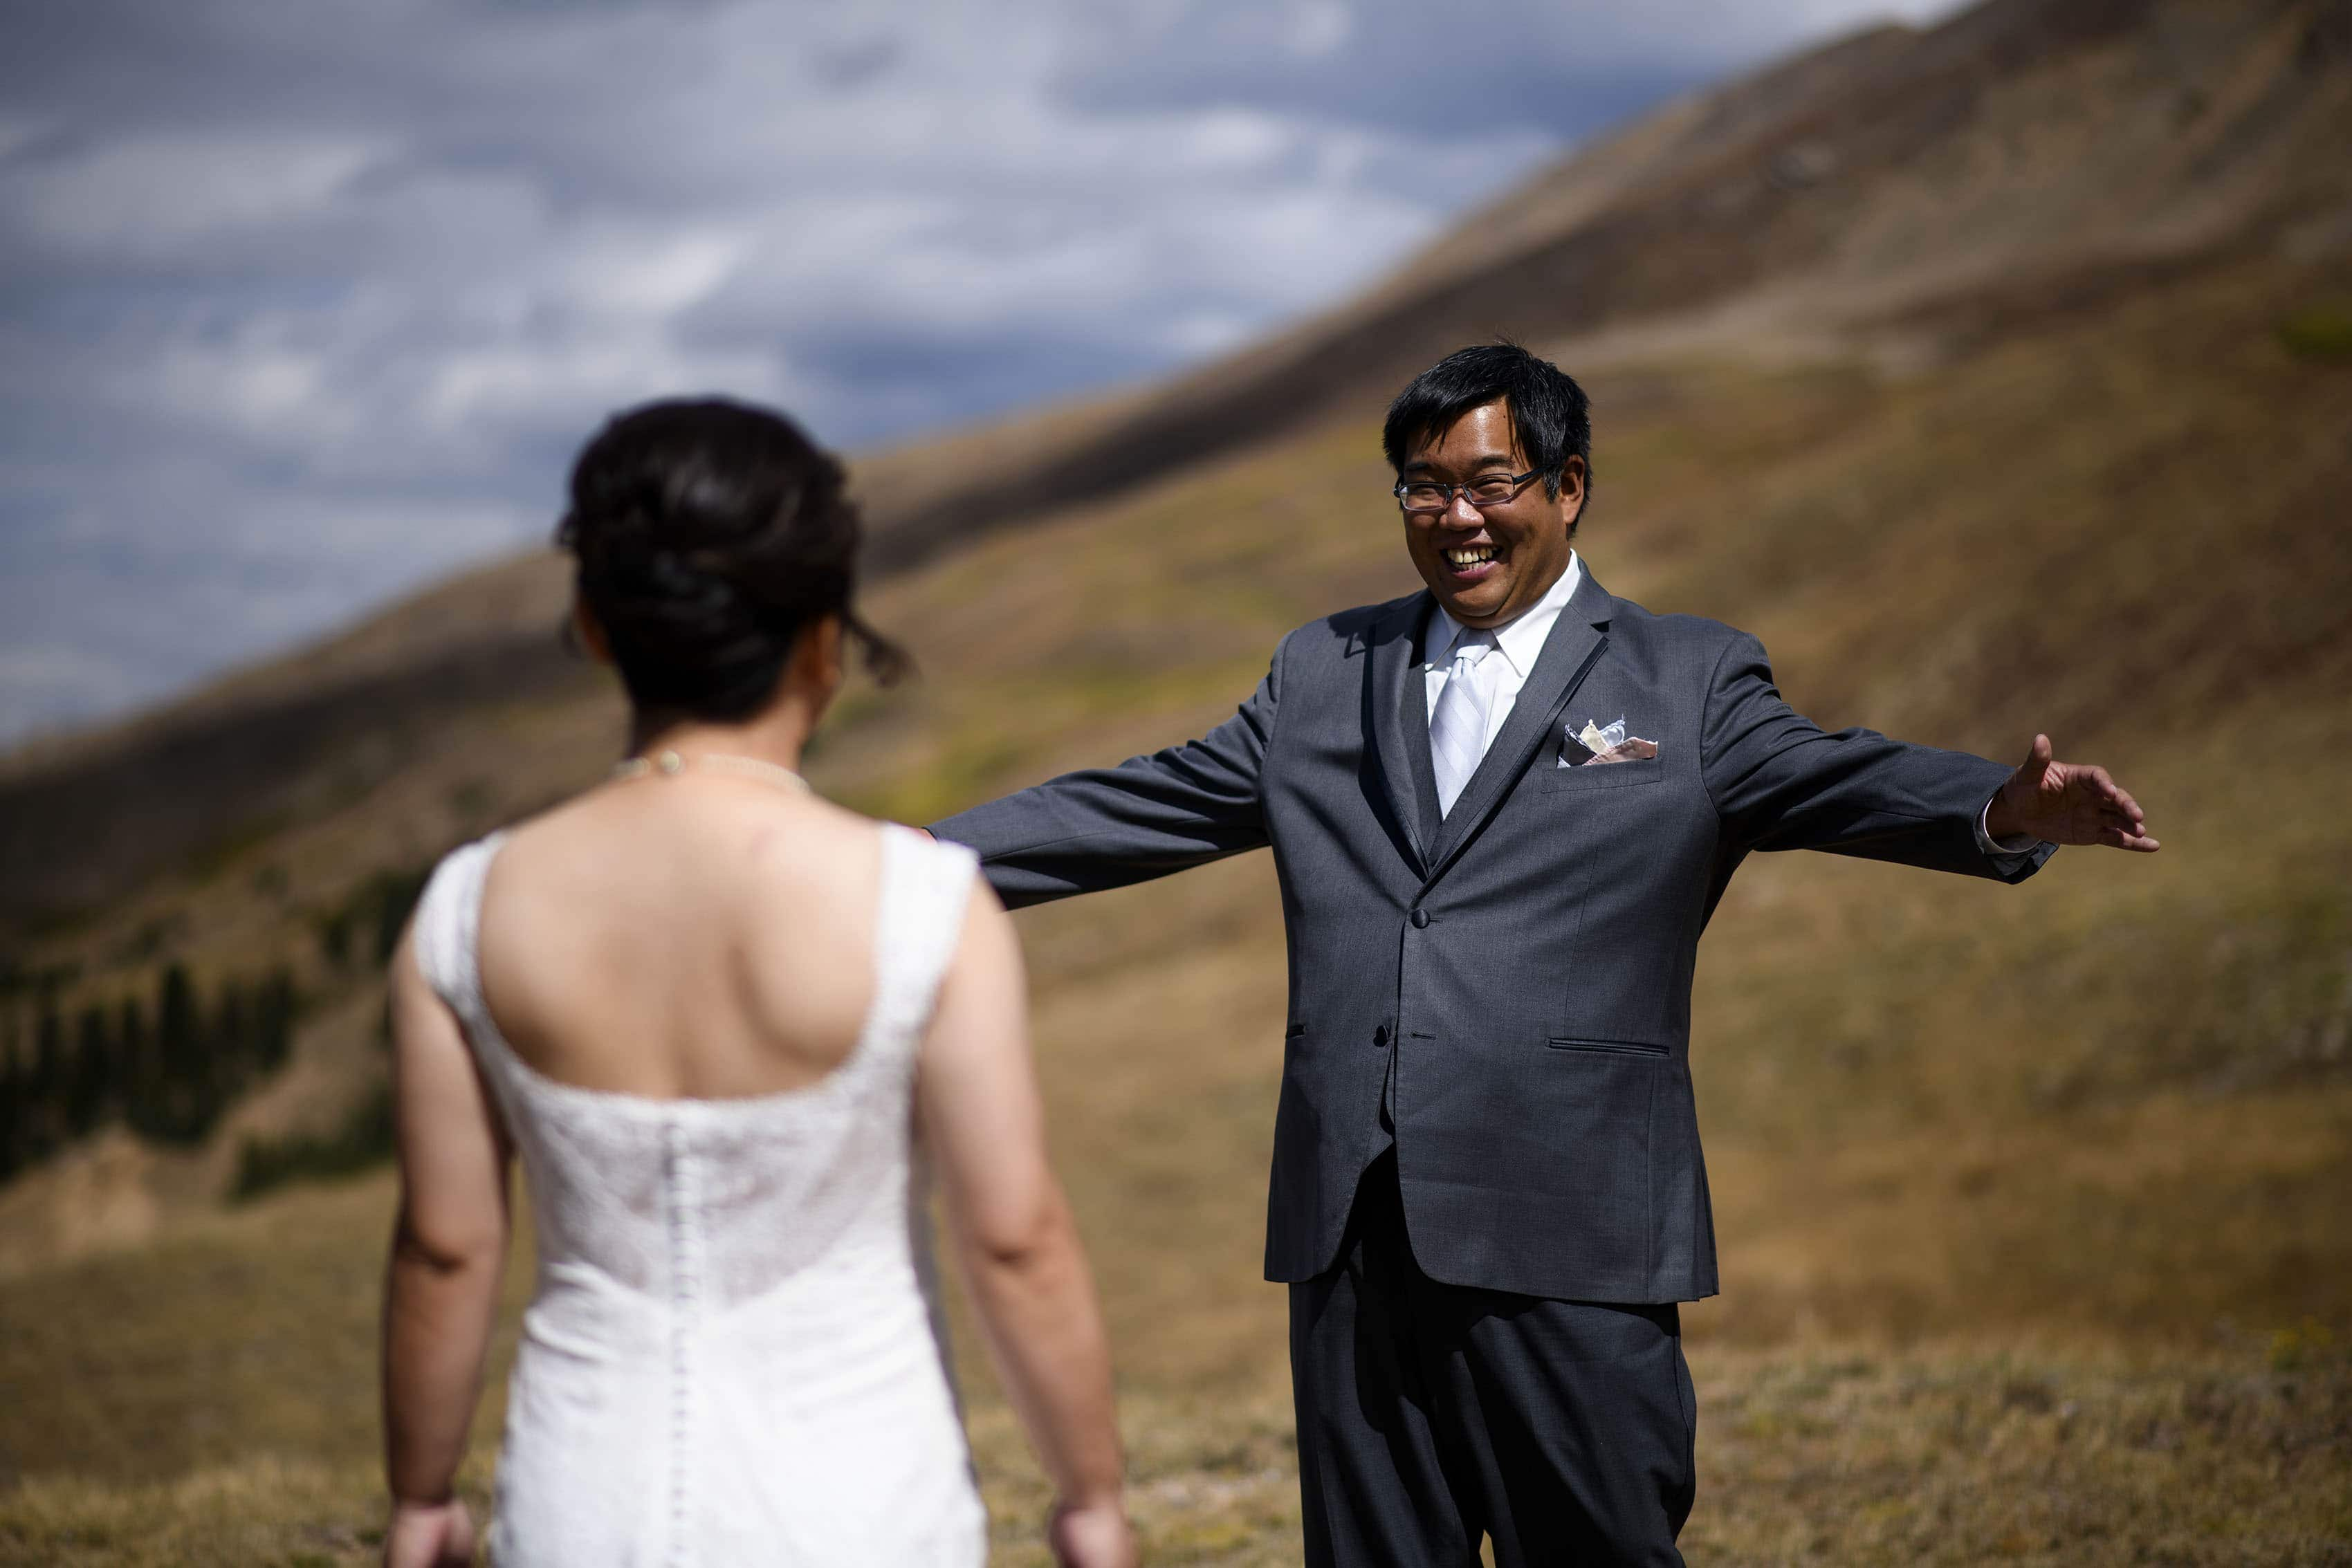 David reacts to seeing Xinya during their first look at Loveland Pass